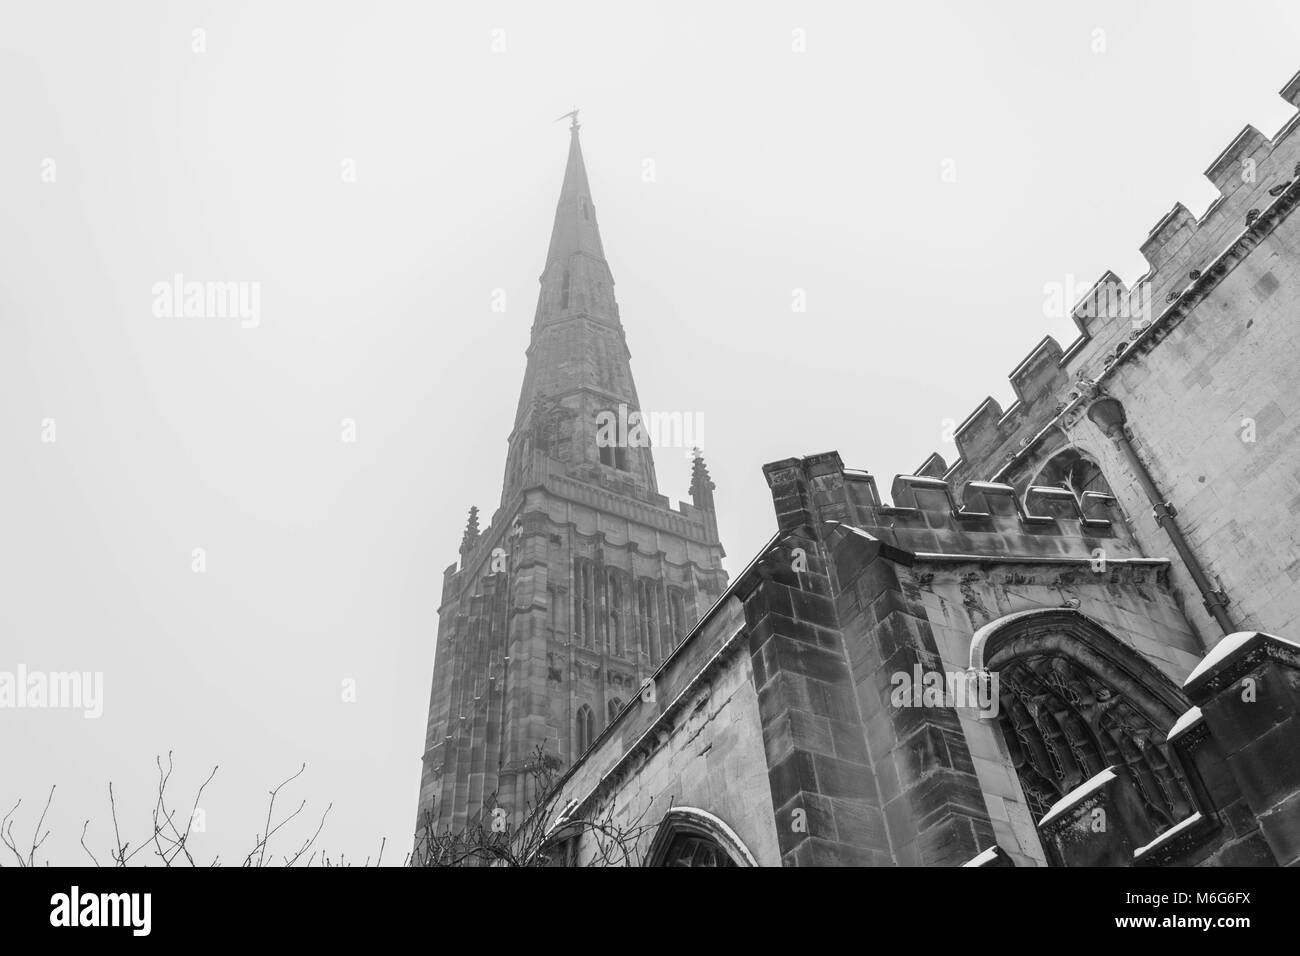 Holl Trinity Church, Broadgate, Coventry, England. - Stock Image